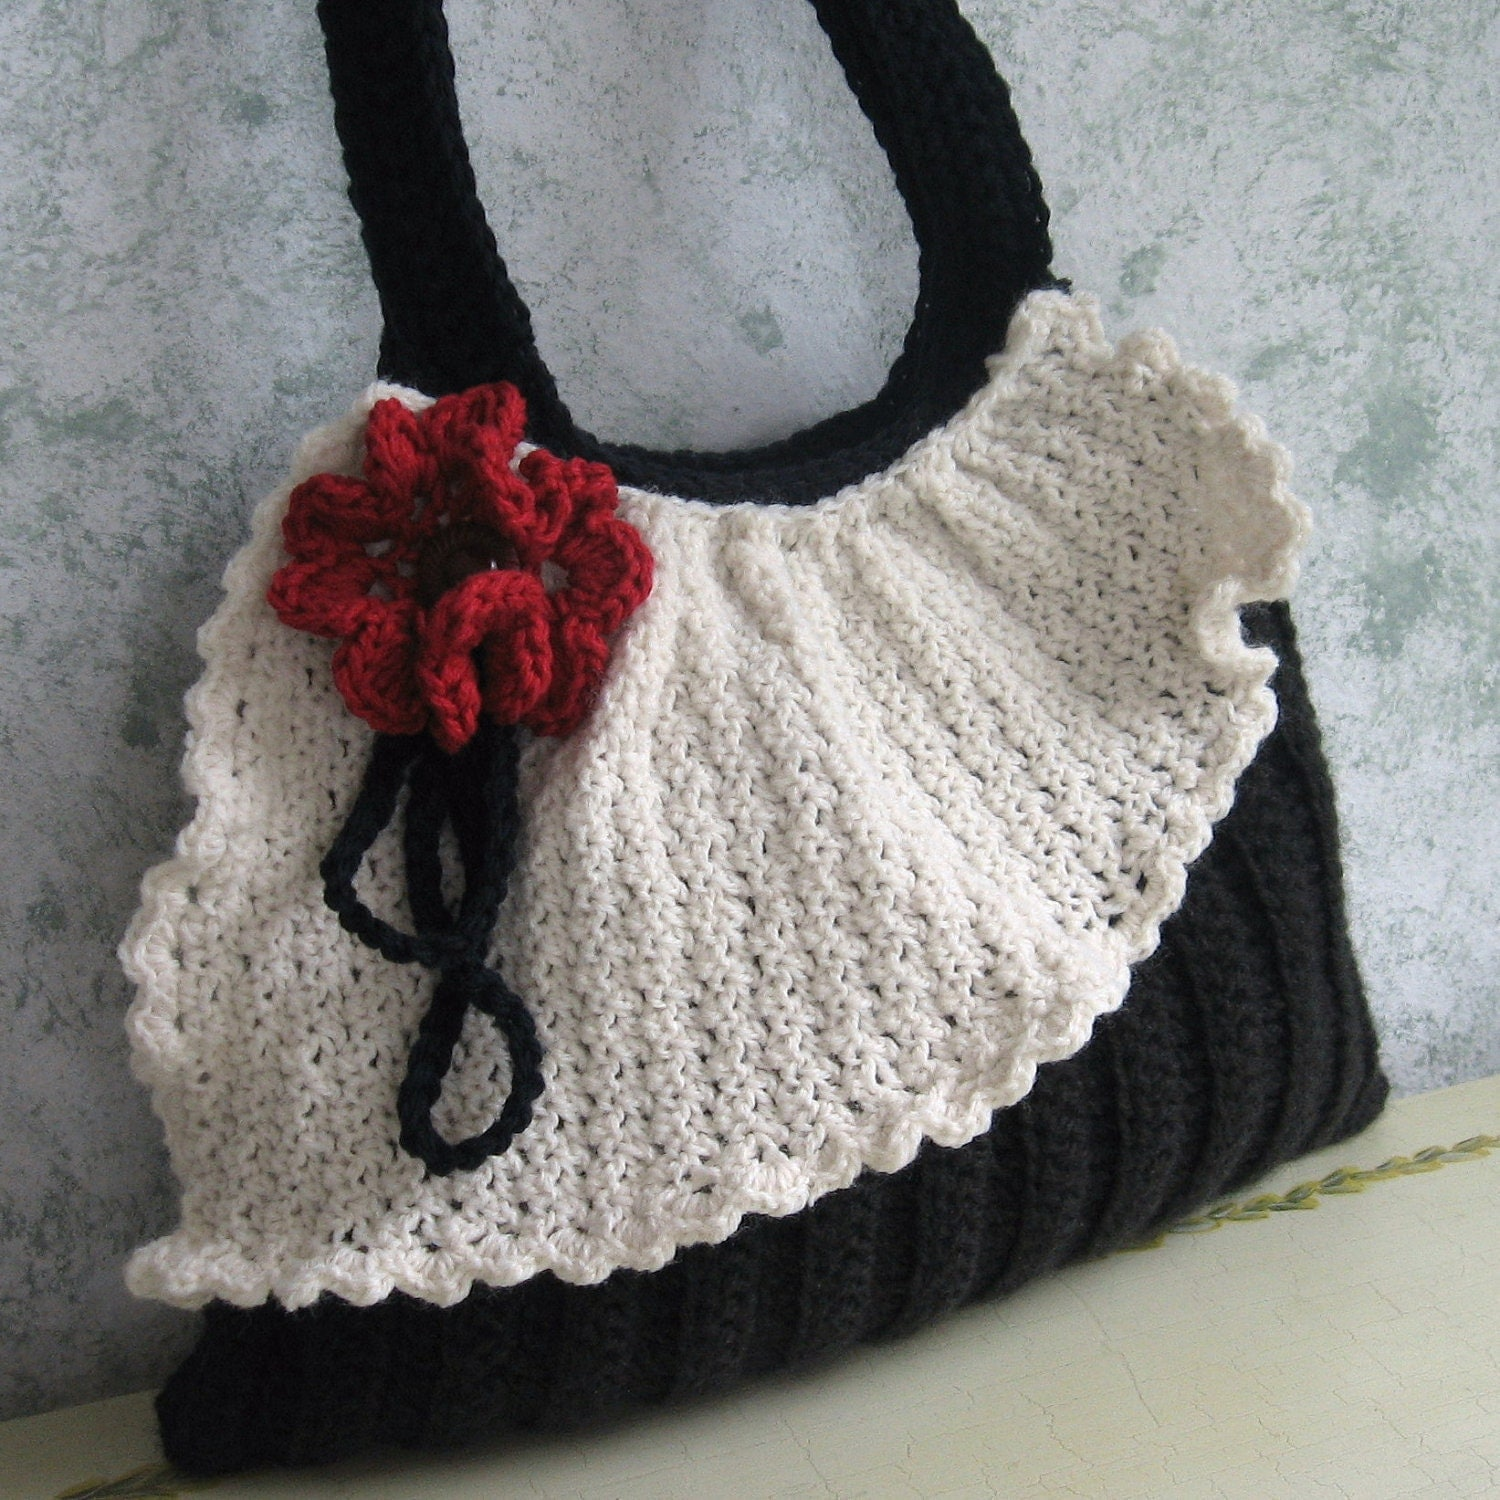 Crochet Bags Video : Crochet Purse Pattern Pleated Bag With Drape And by kalliedesigns